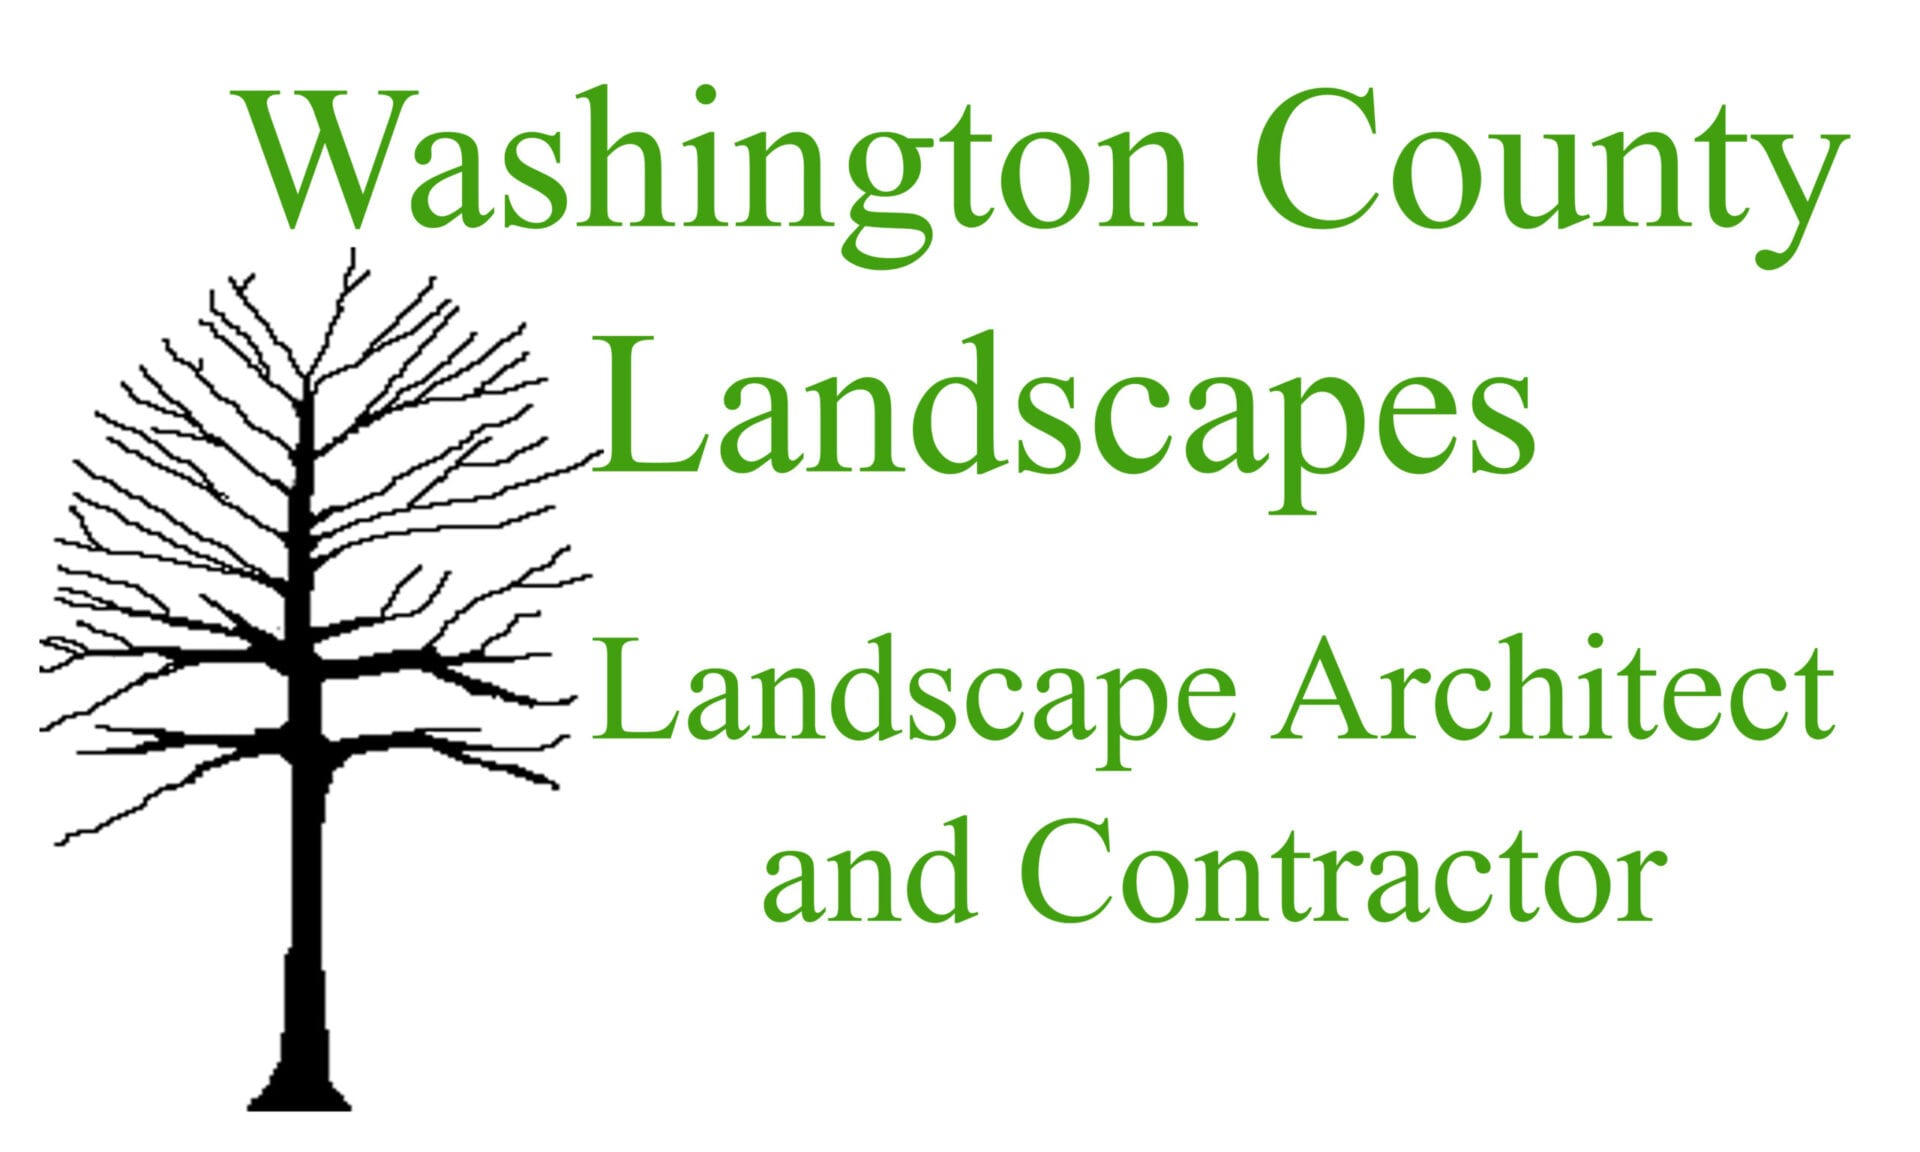 Washington County Landscapes, Landscape Architect and Contractor